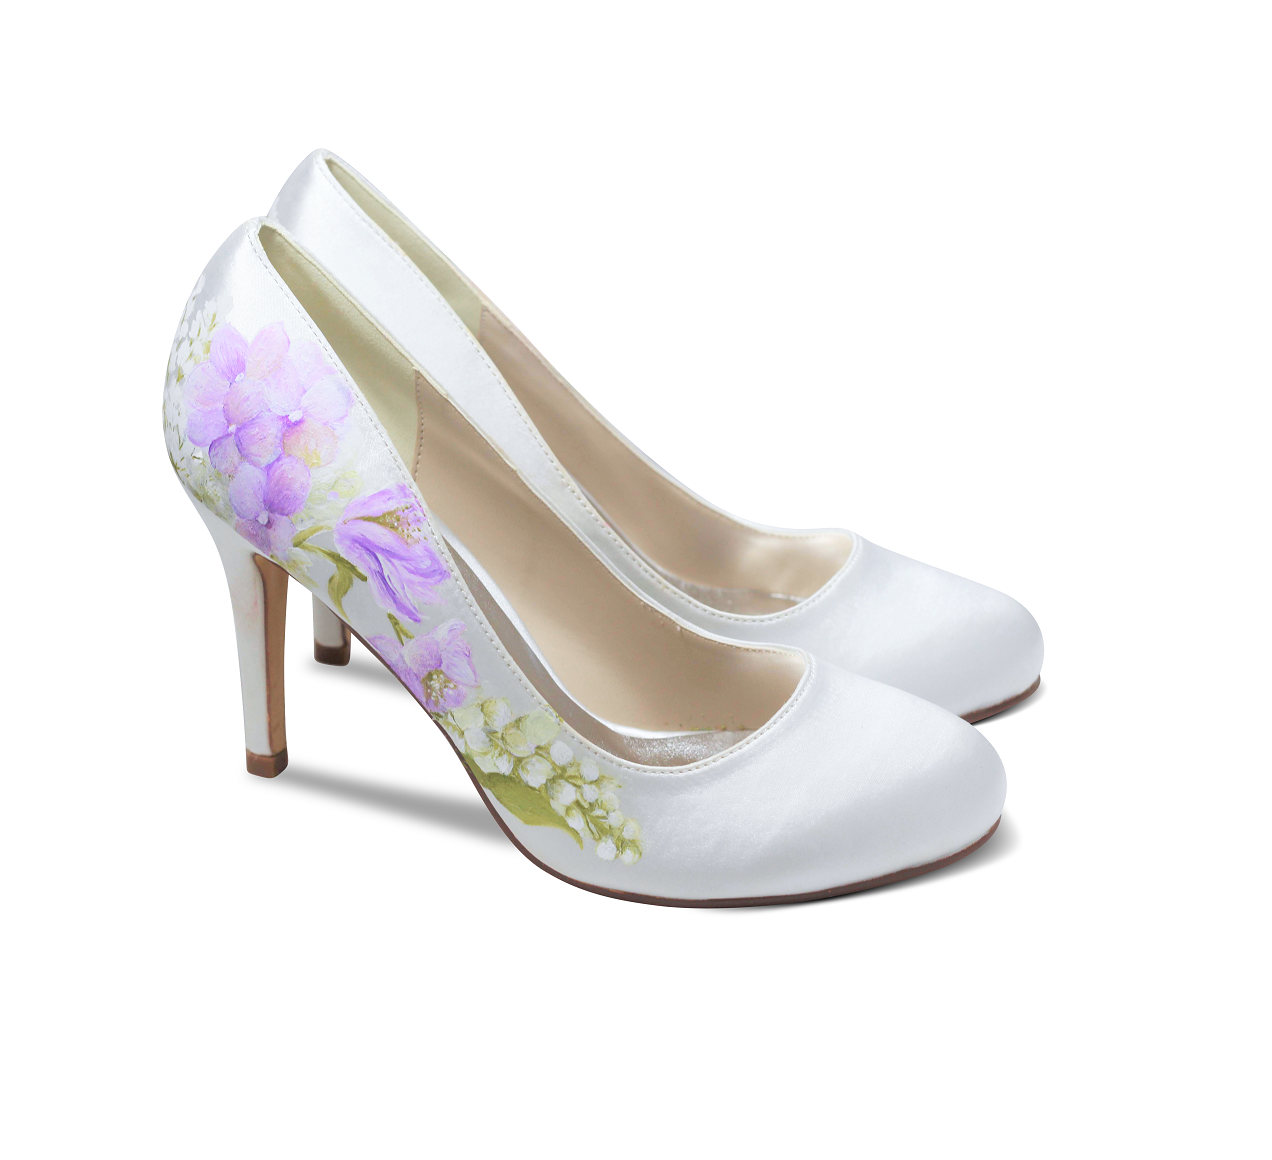 Lilac Hydrangea Ivory wedding shoe, with splashes of green.